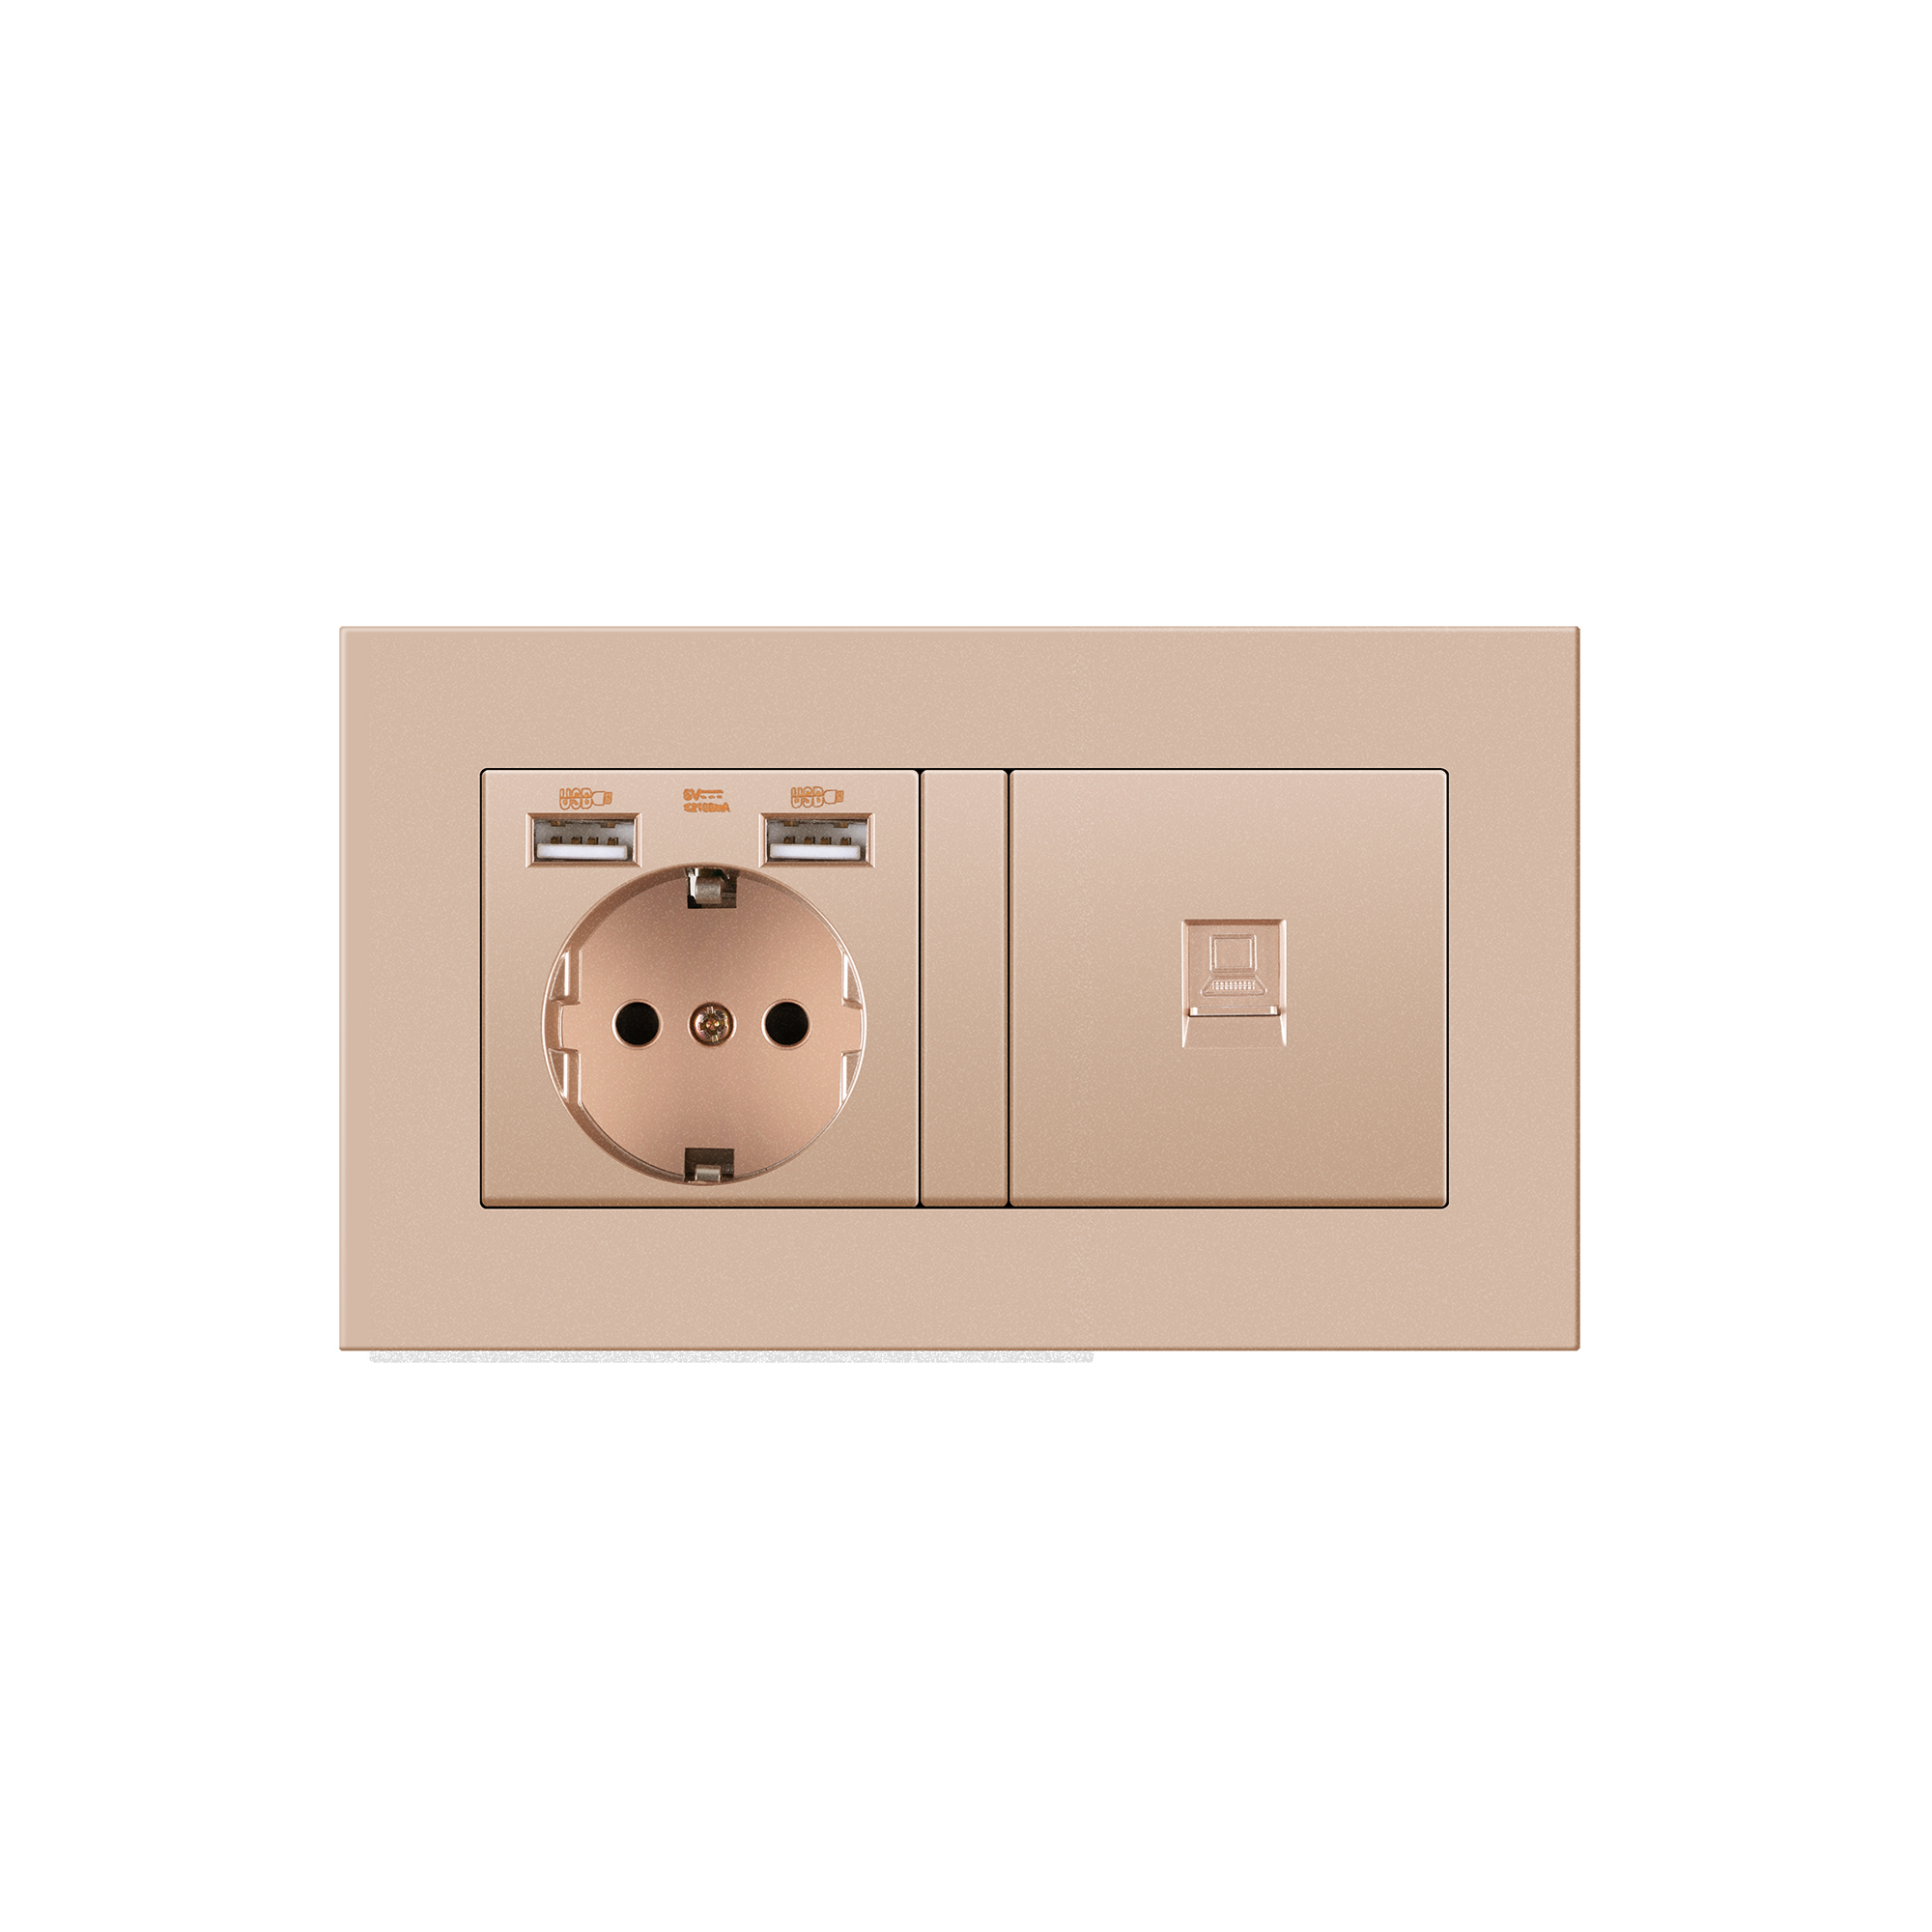 Germany home Wall Power Socket With DIY socket RJ45 switch TV computer Retardant PC panel 146*86mm Electricity outlet,GOLD